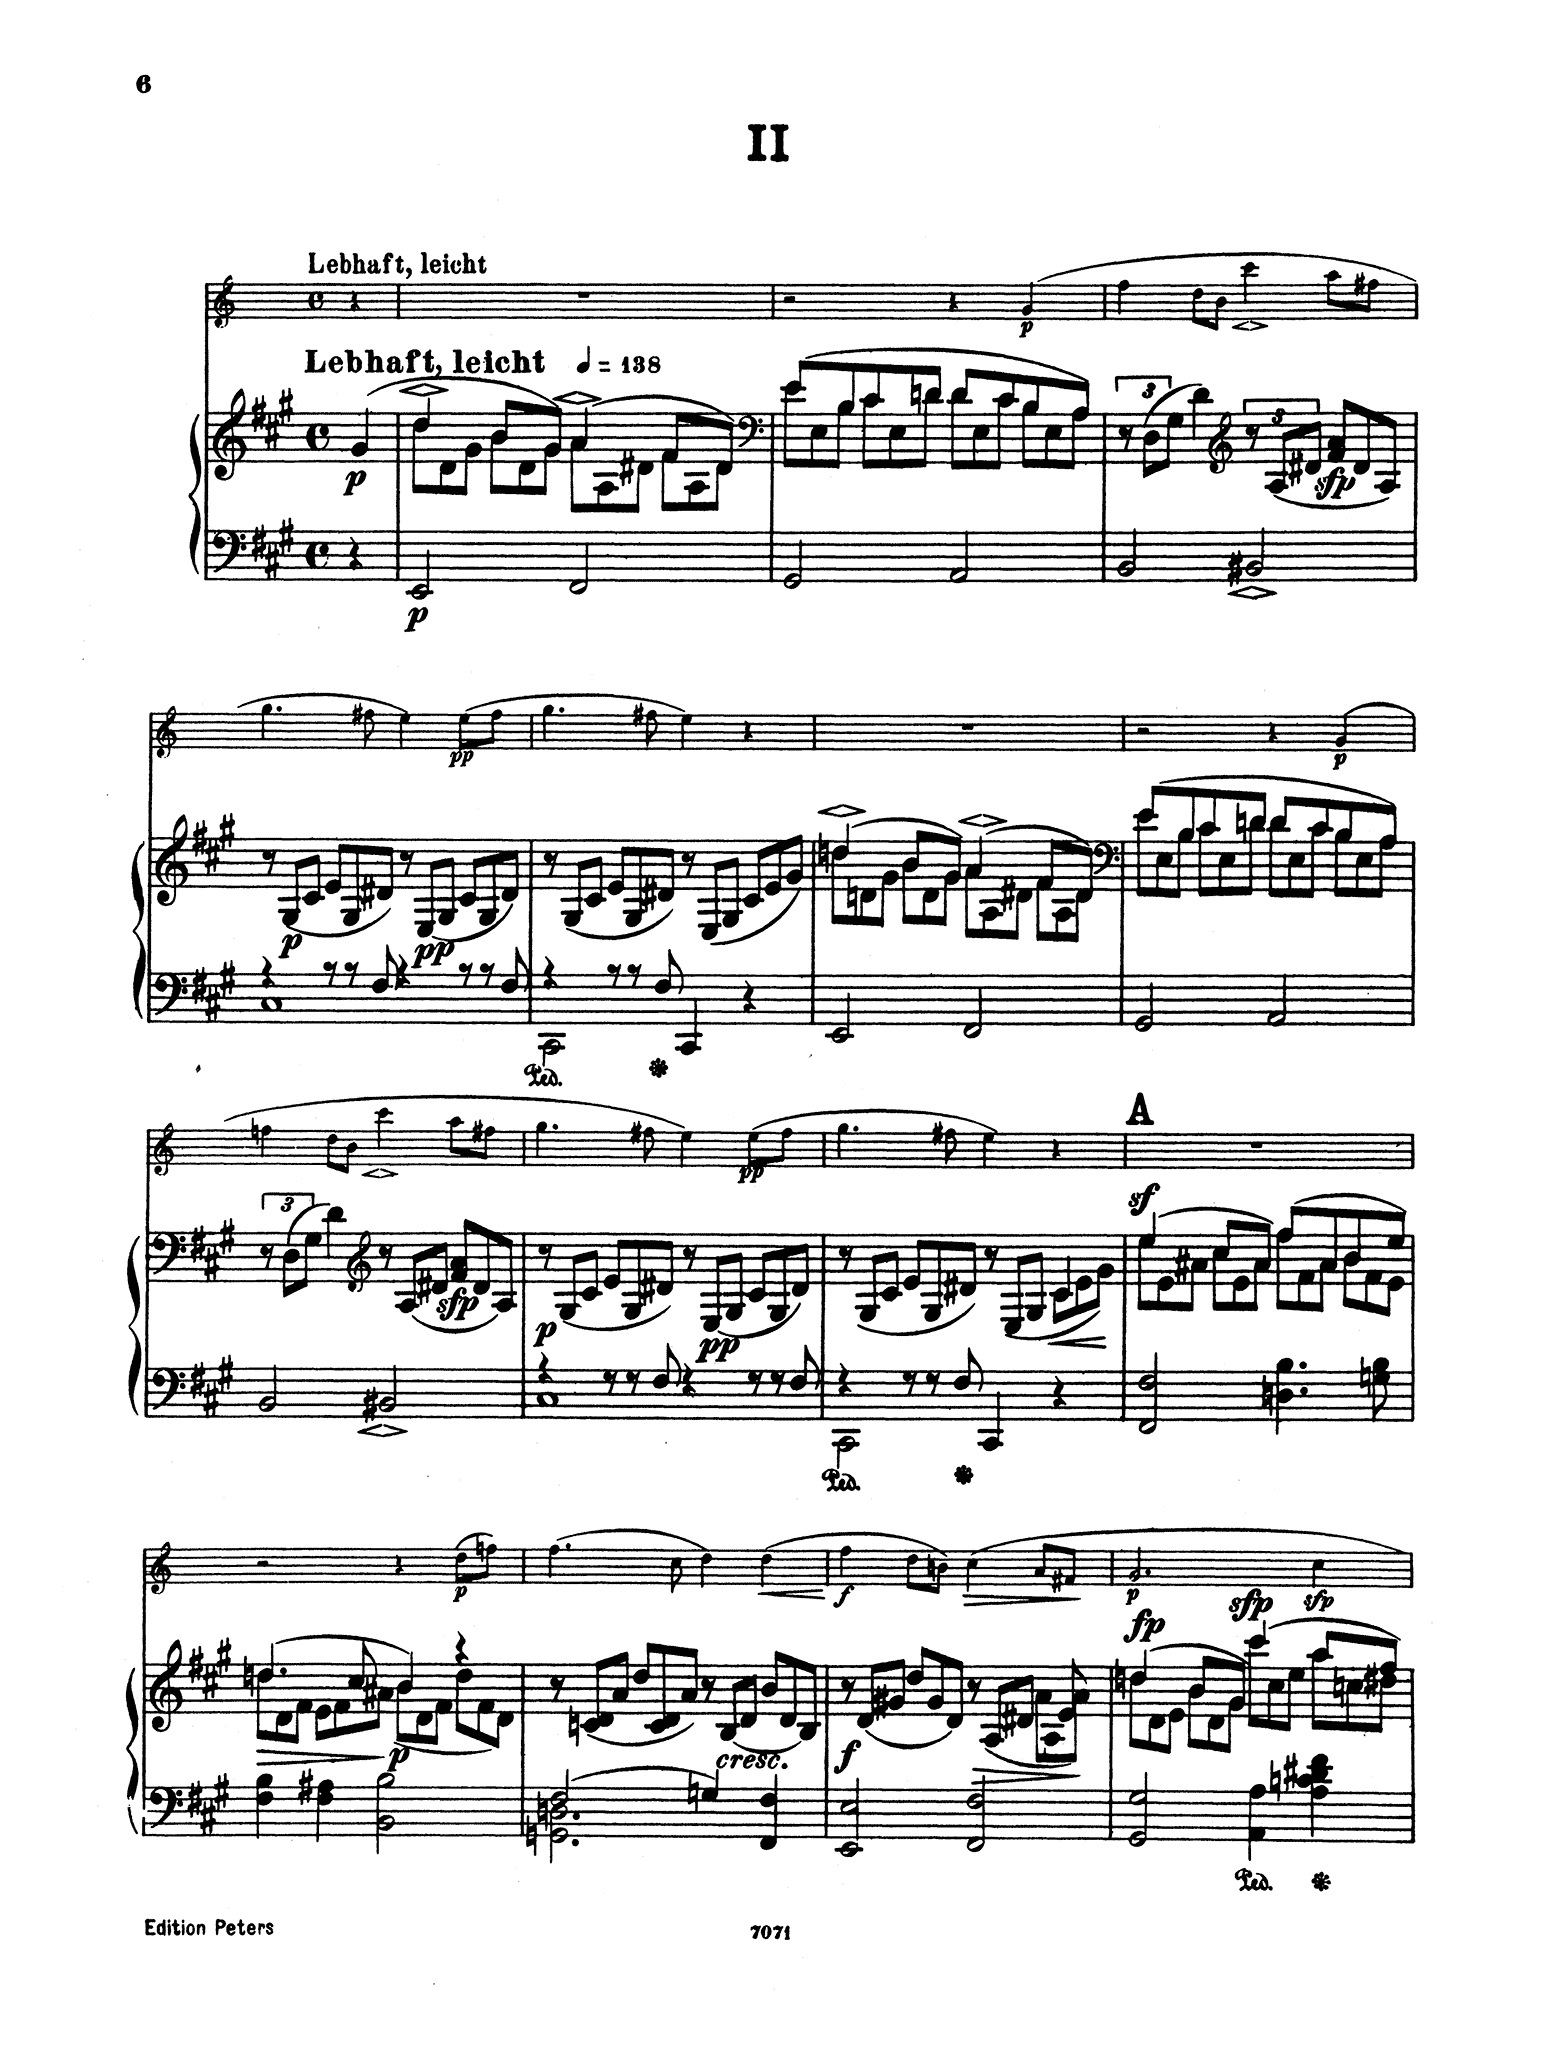 Fantasiestücke, Op. 73 - Movement 2